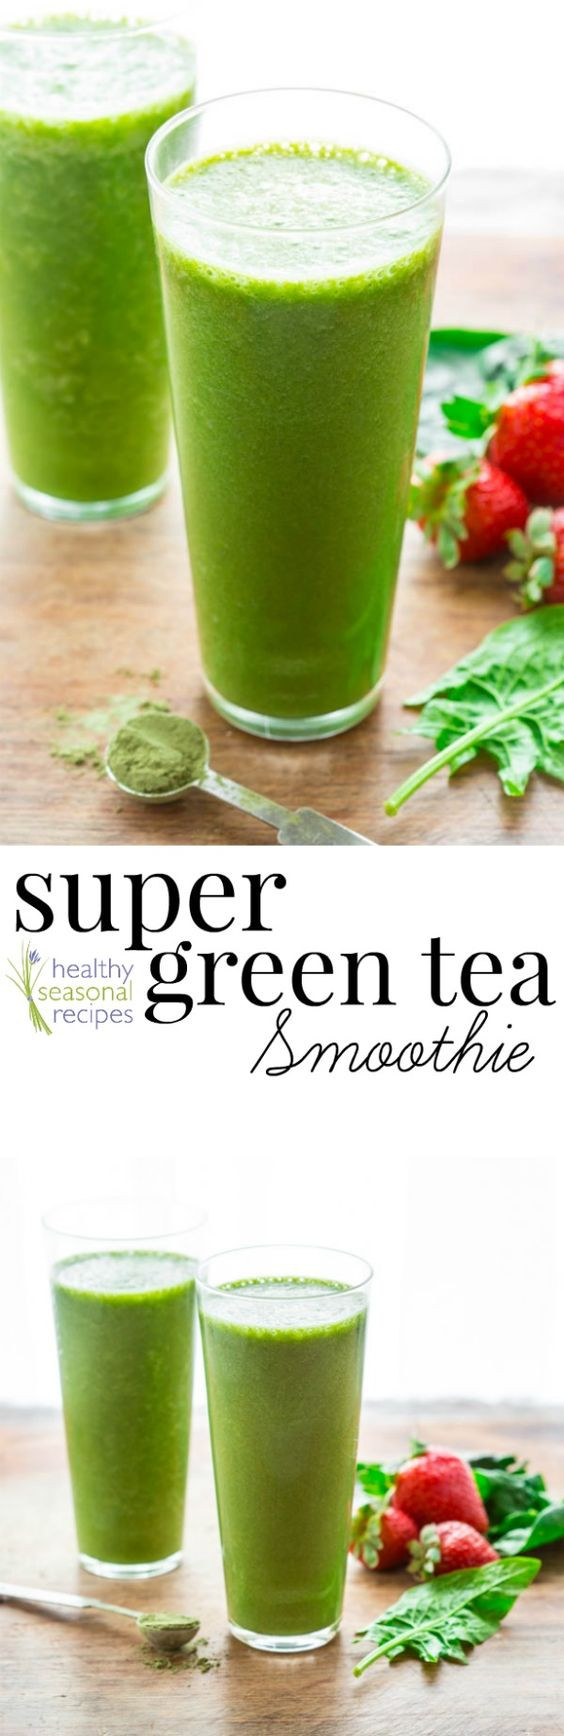 Super Healthy Smoothie Recipes  Antioxidant smoothie Super greens and Green teas on Pinterest